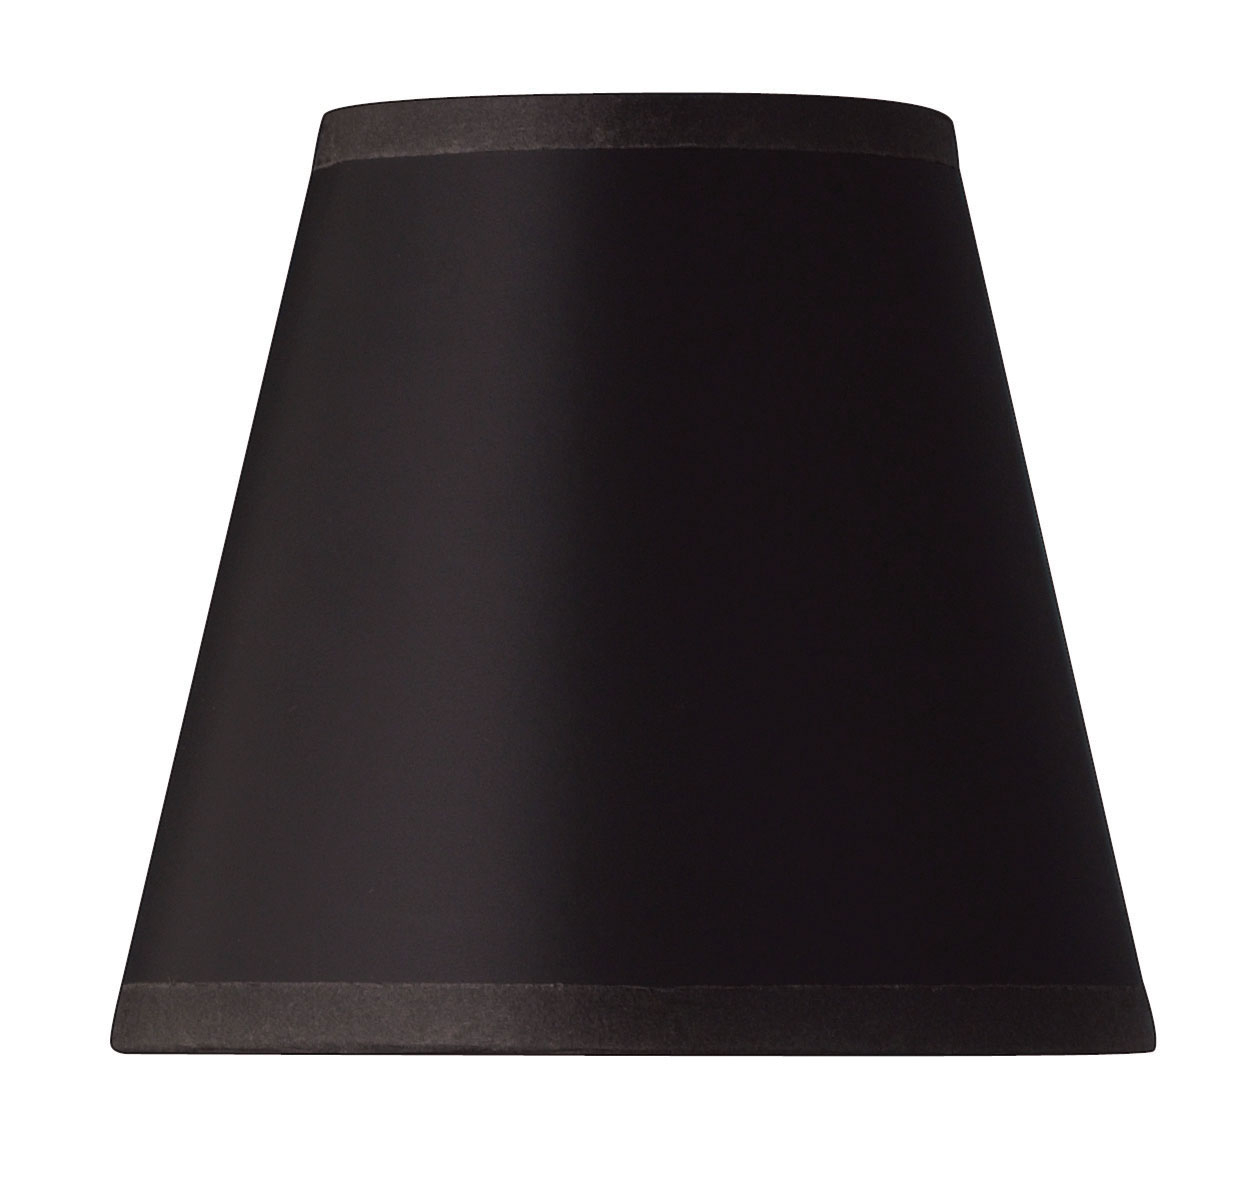 Accessory Shade from the Virginian collection by Hinkley 5122BK